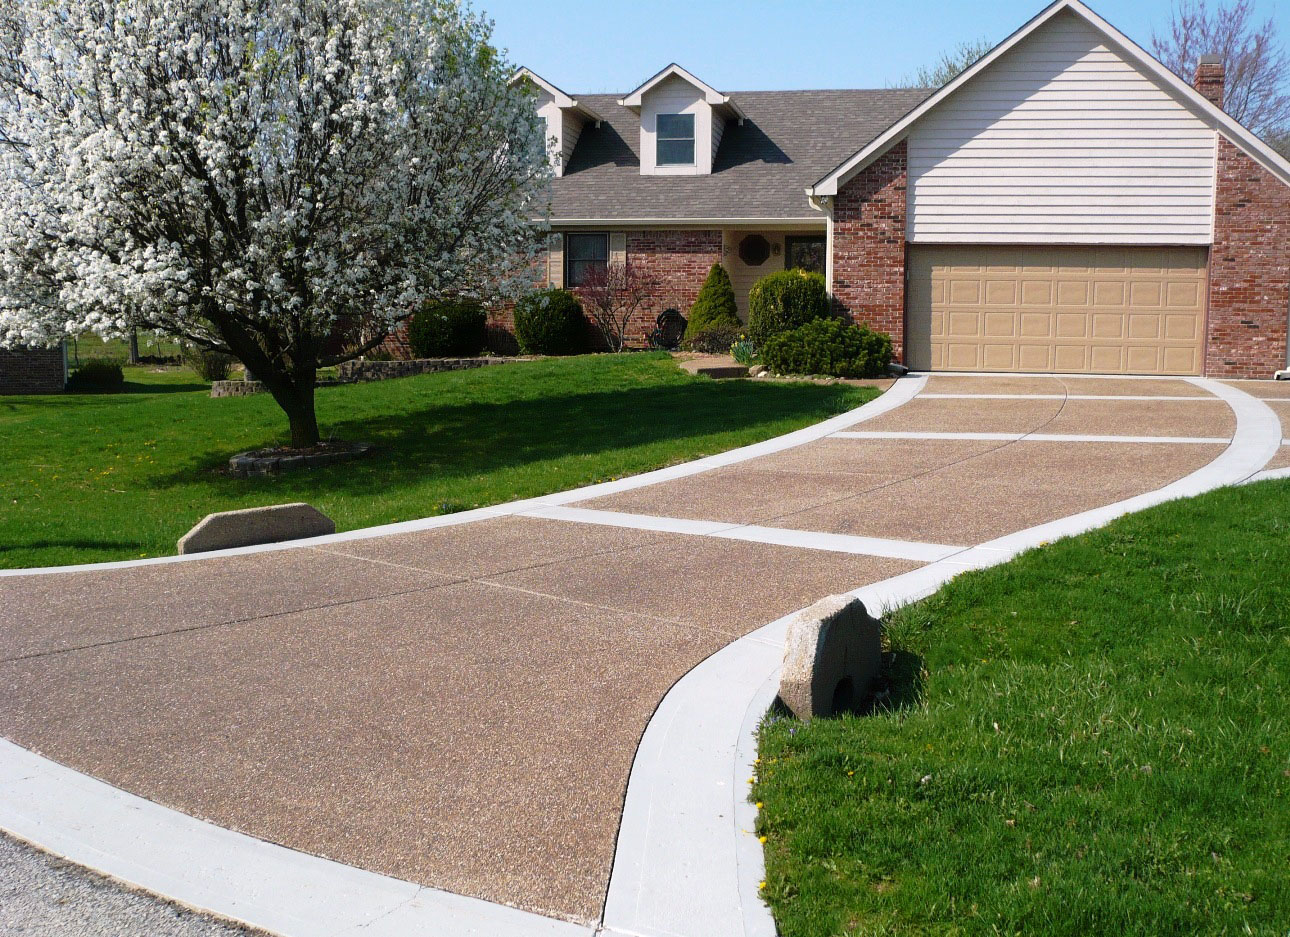 Exposed Pea Fill Aggregate Driveway with brown pigmented sealer and pigmented borders - sealed 2010 20 years old